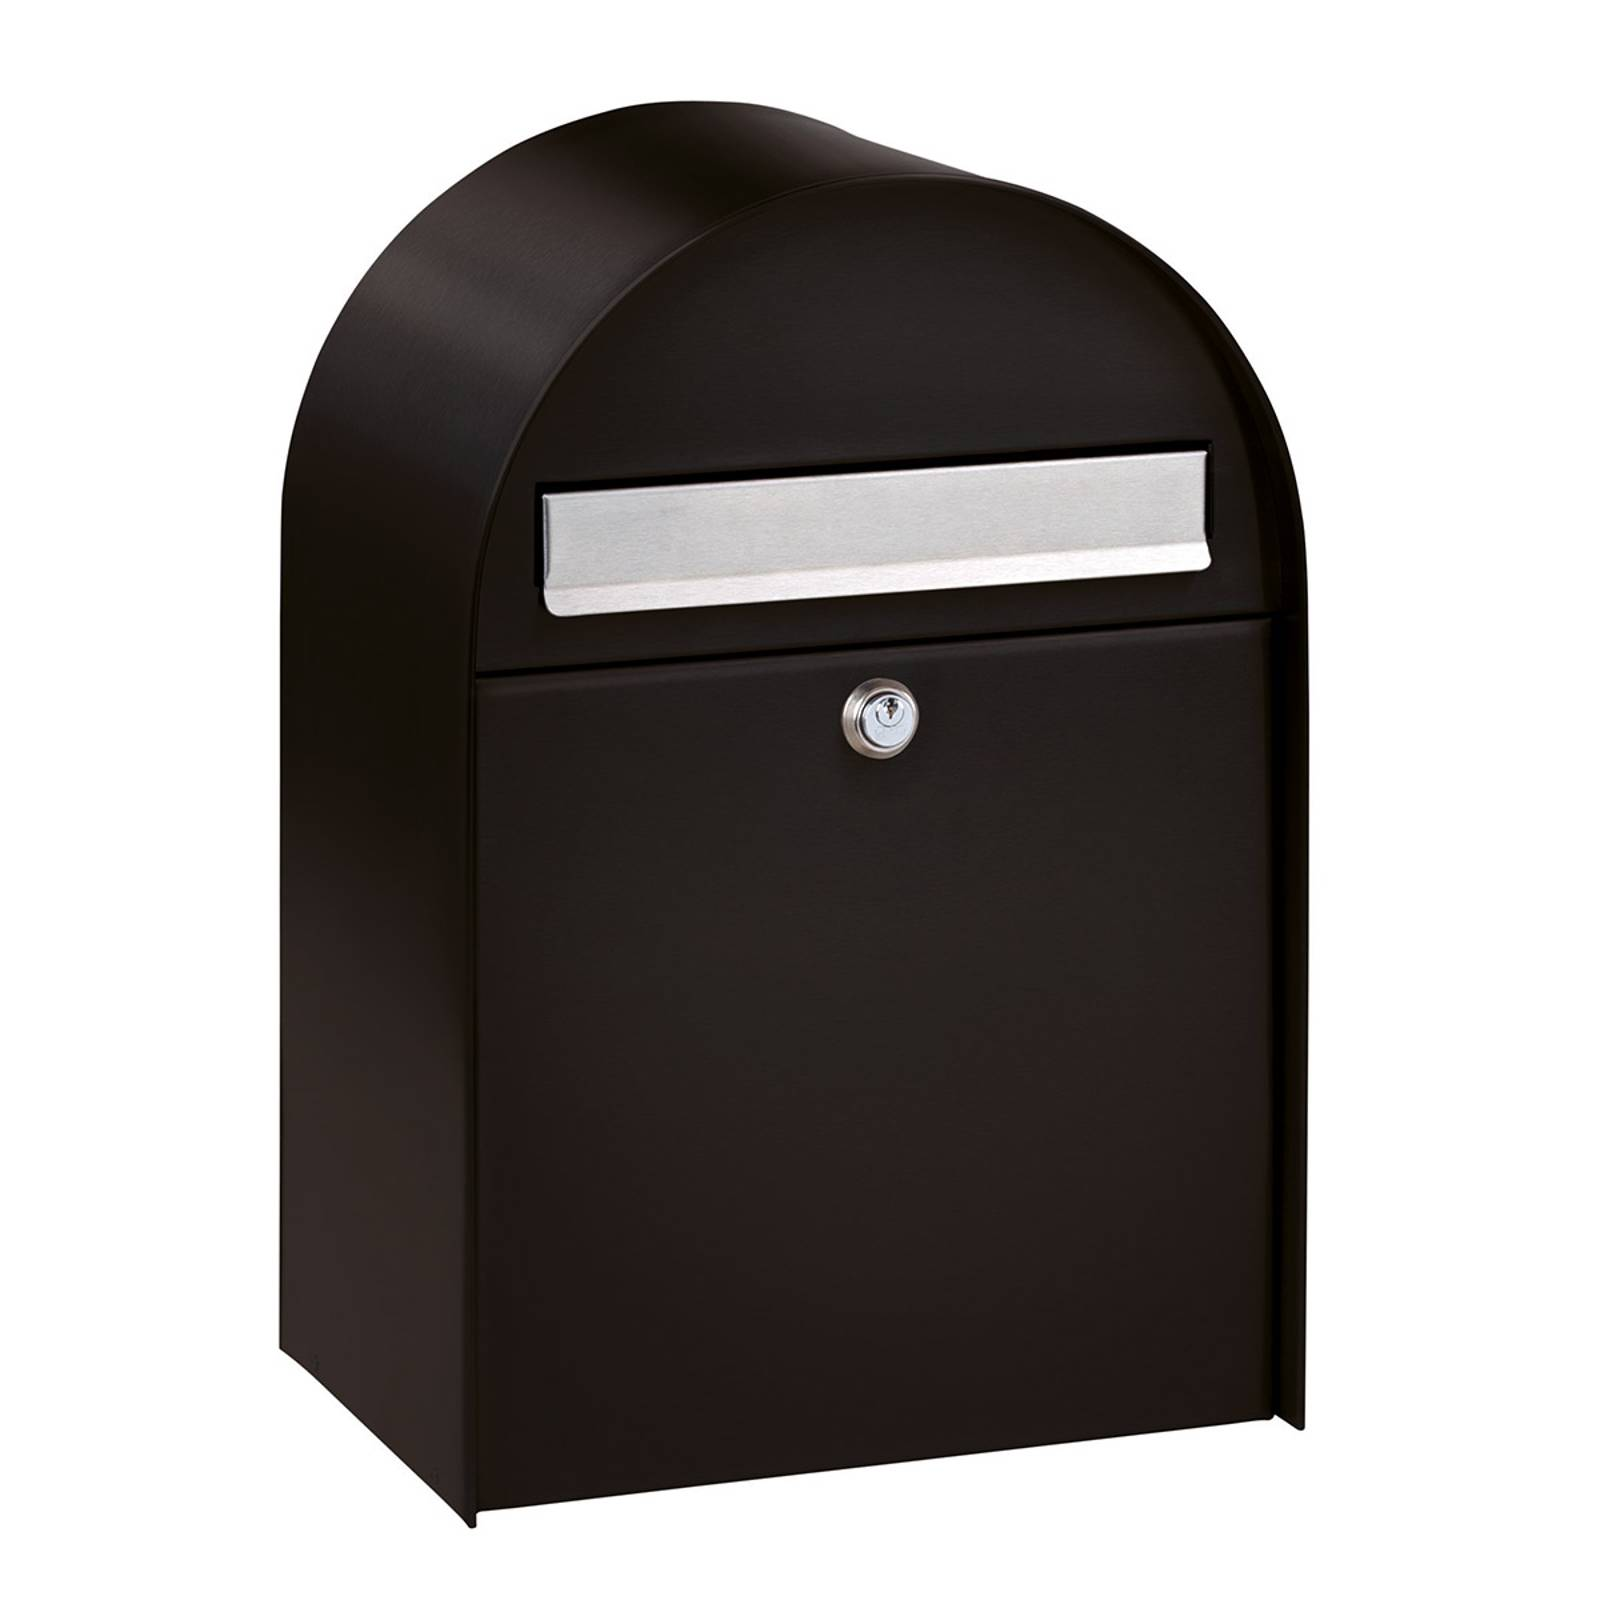 Spacious letter box Nordic 680 in Black from Burgwächter